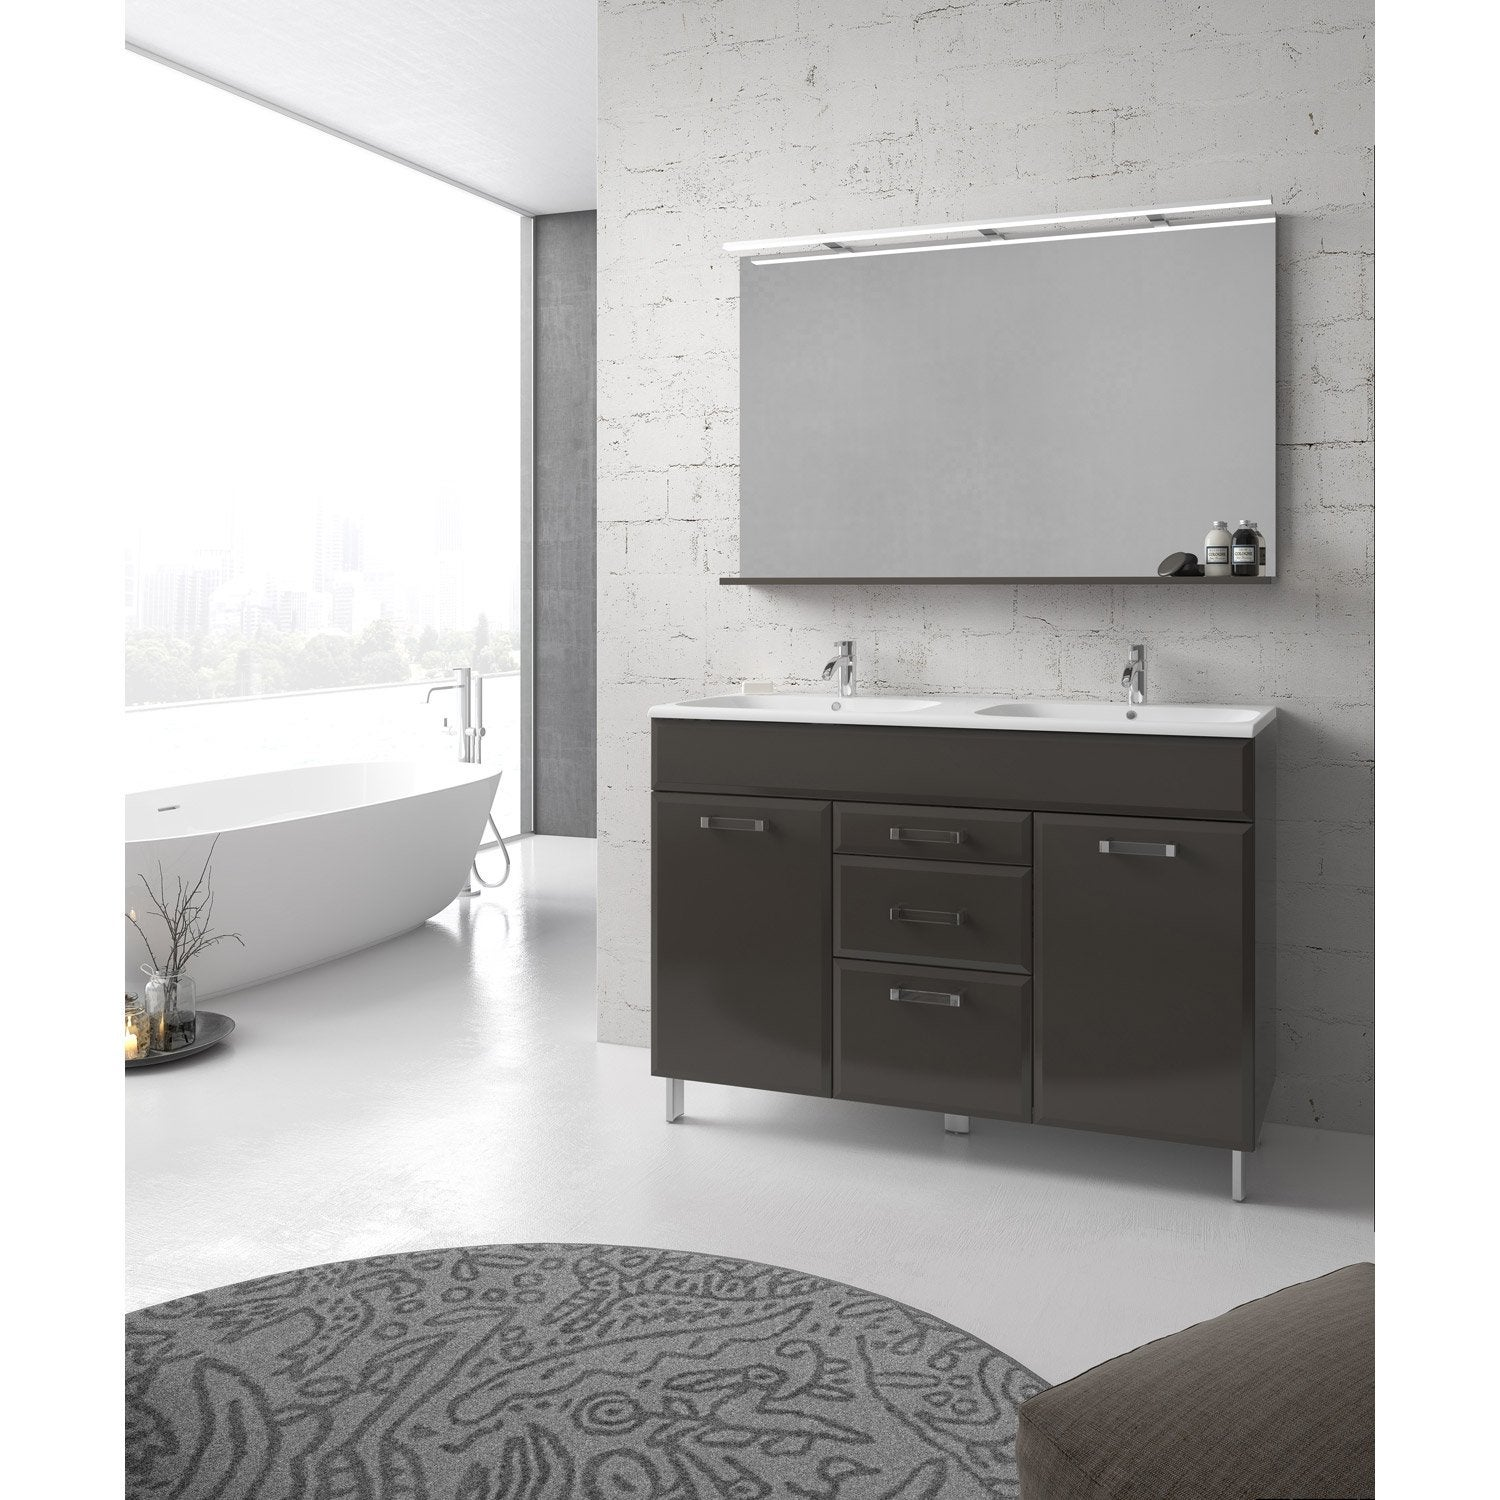 Meuble De Toilette Leroy Merlin Maison Design Bahbe Com # Meuble Tv Leroy Merlin